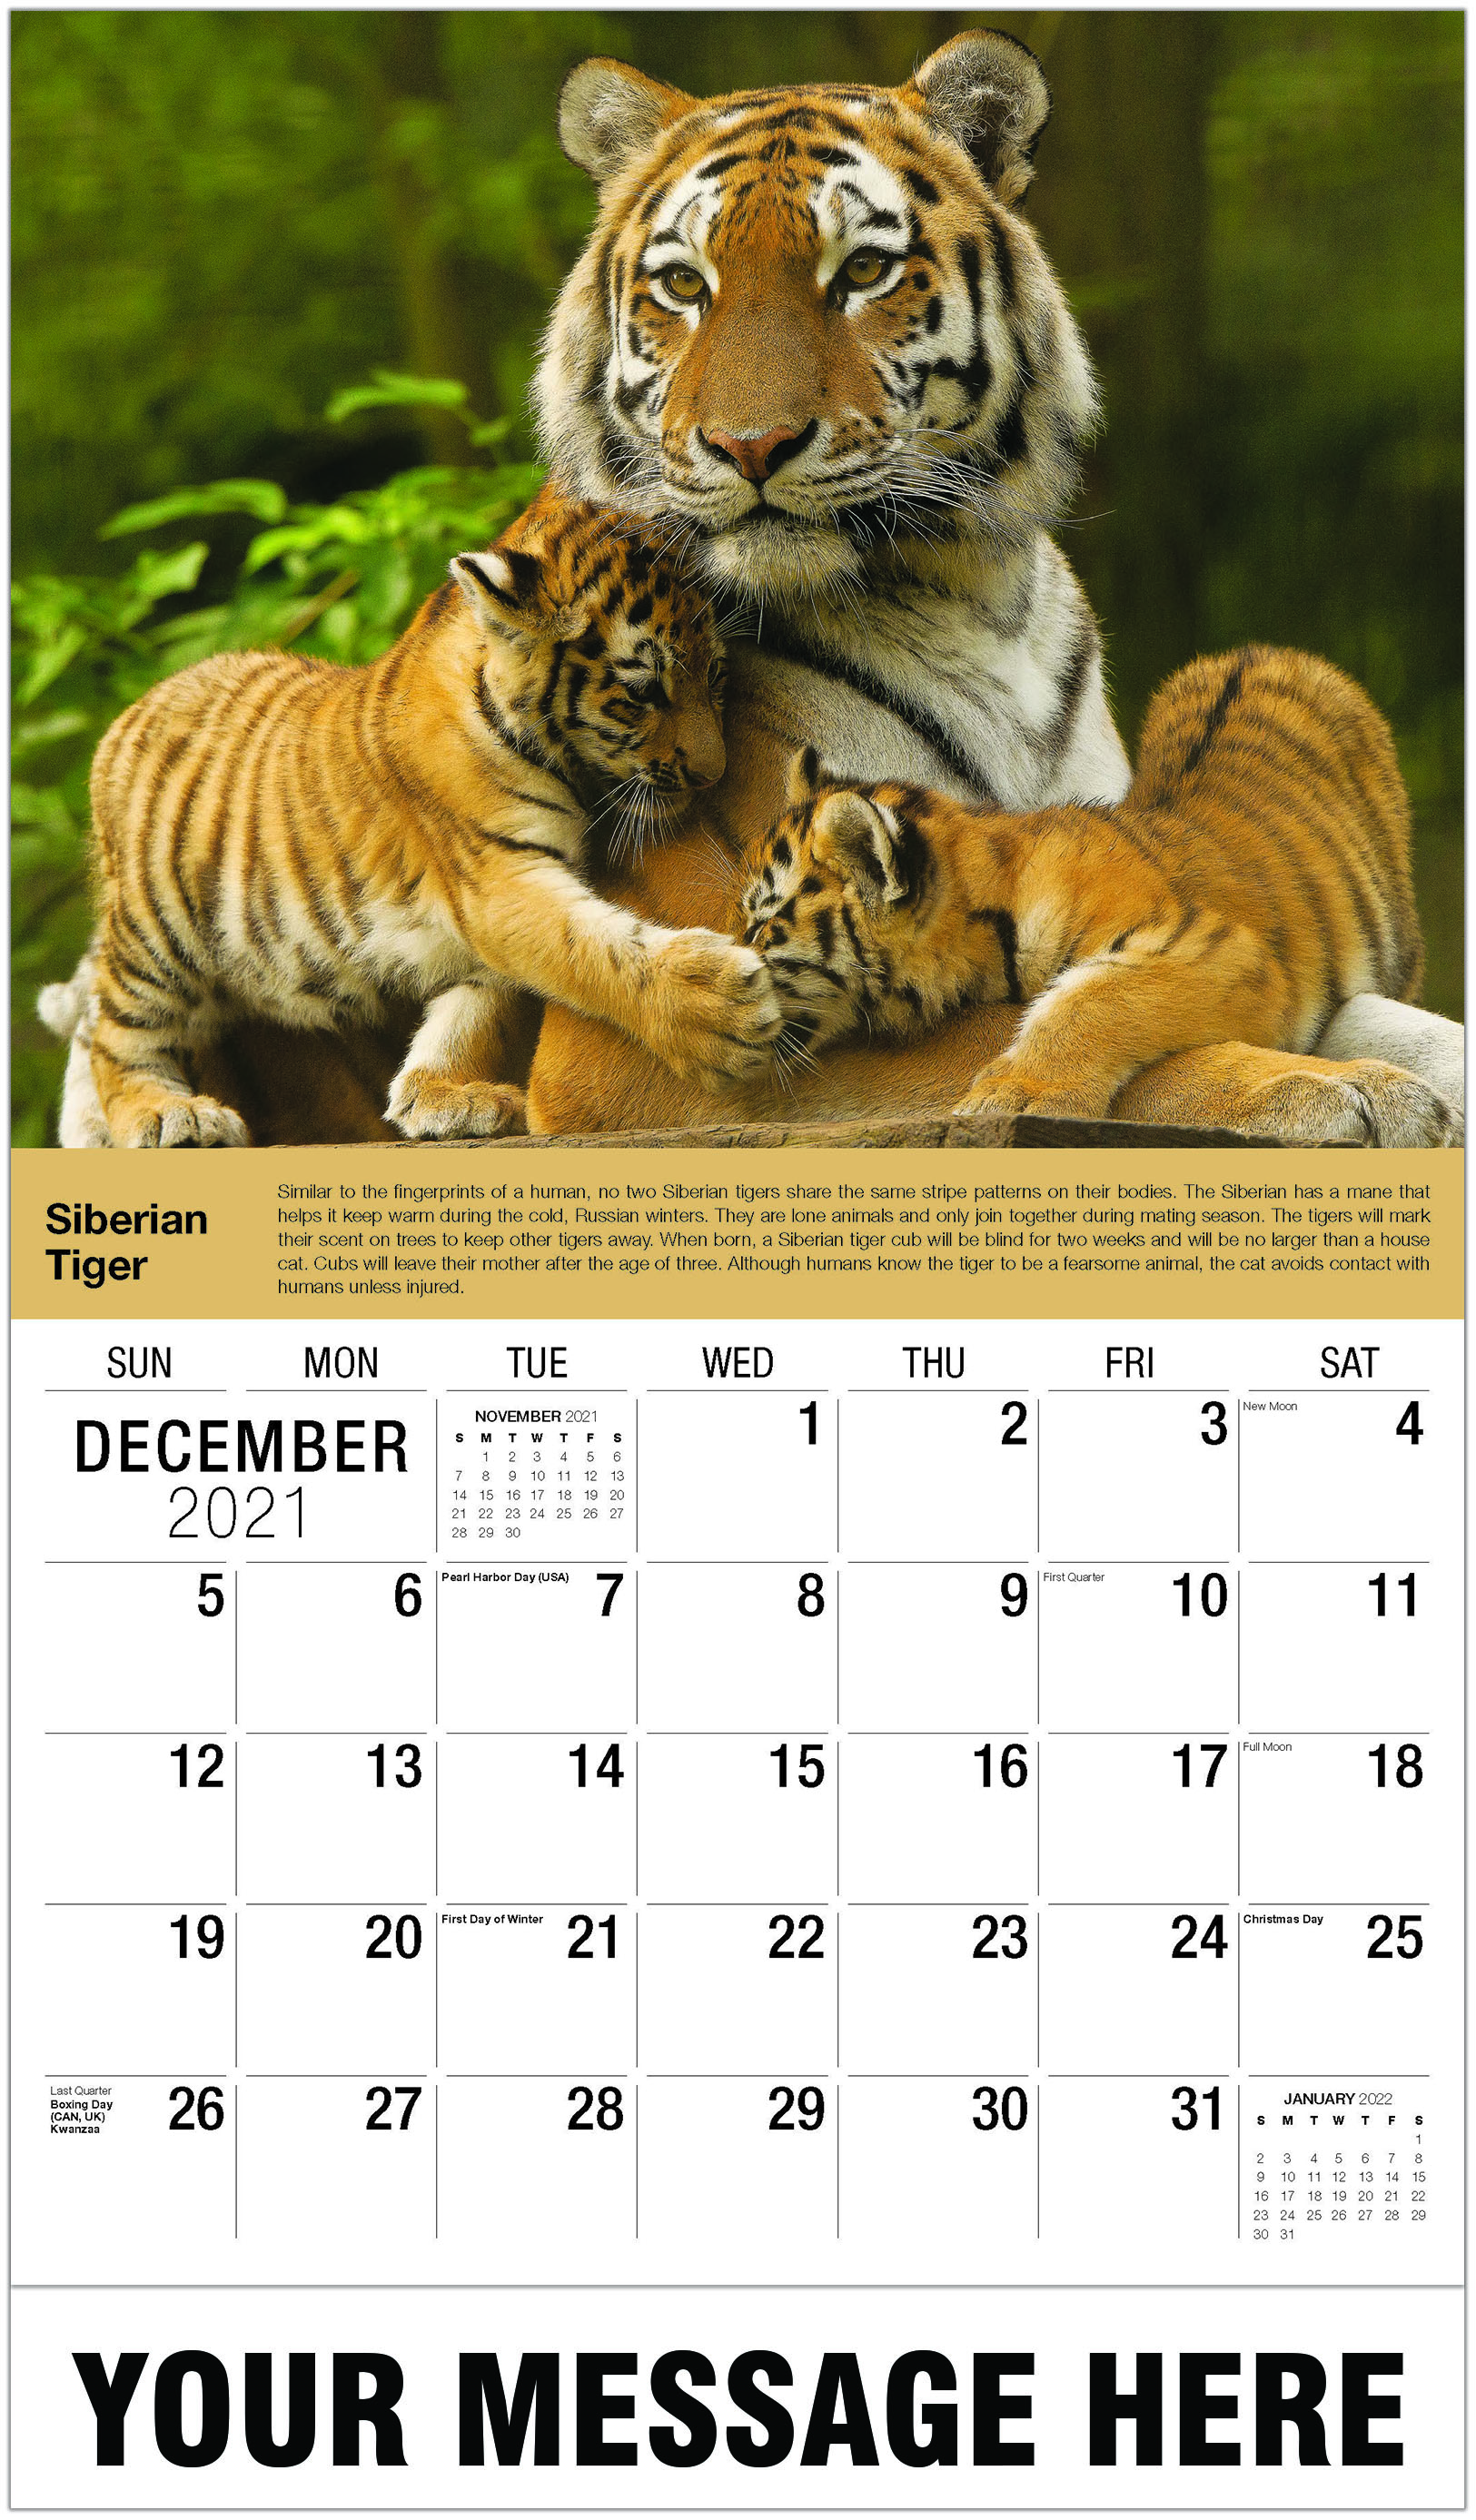 Siberian Tiger - December 2021 - International Wildlife 2021 Promotional Calendar